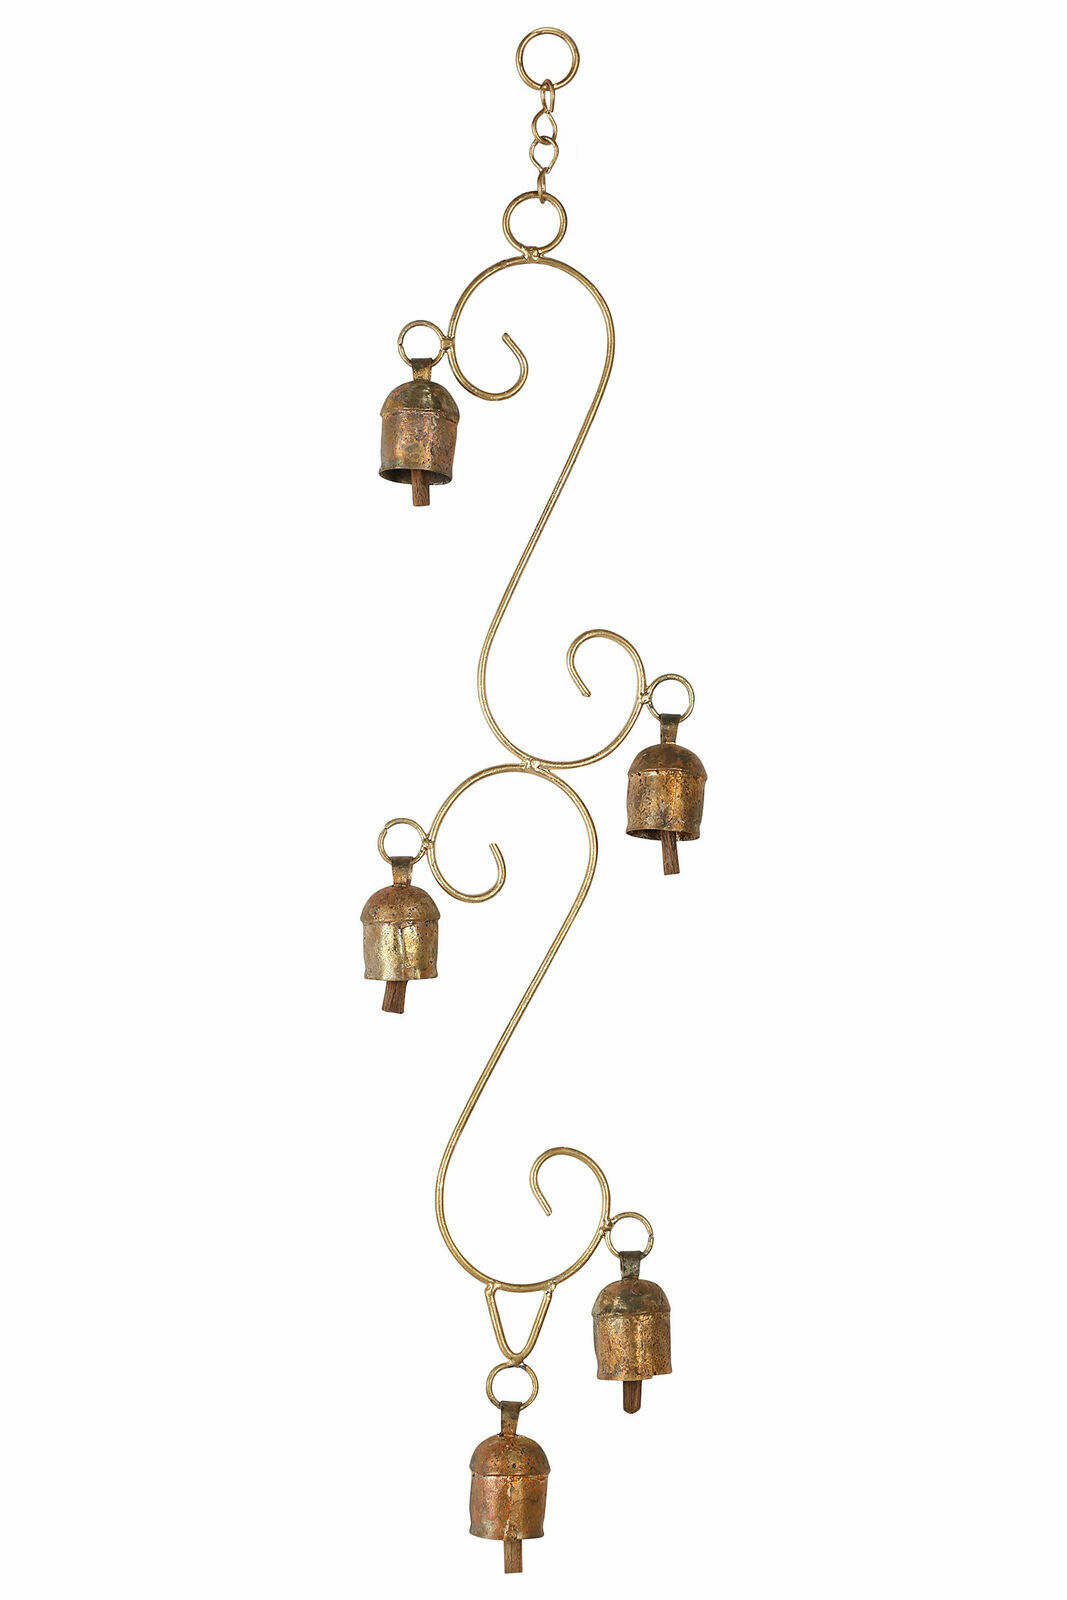 Hanging Bell Home Decoration Copper Alloy Bell Outdoor Hanging Bell